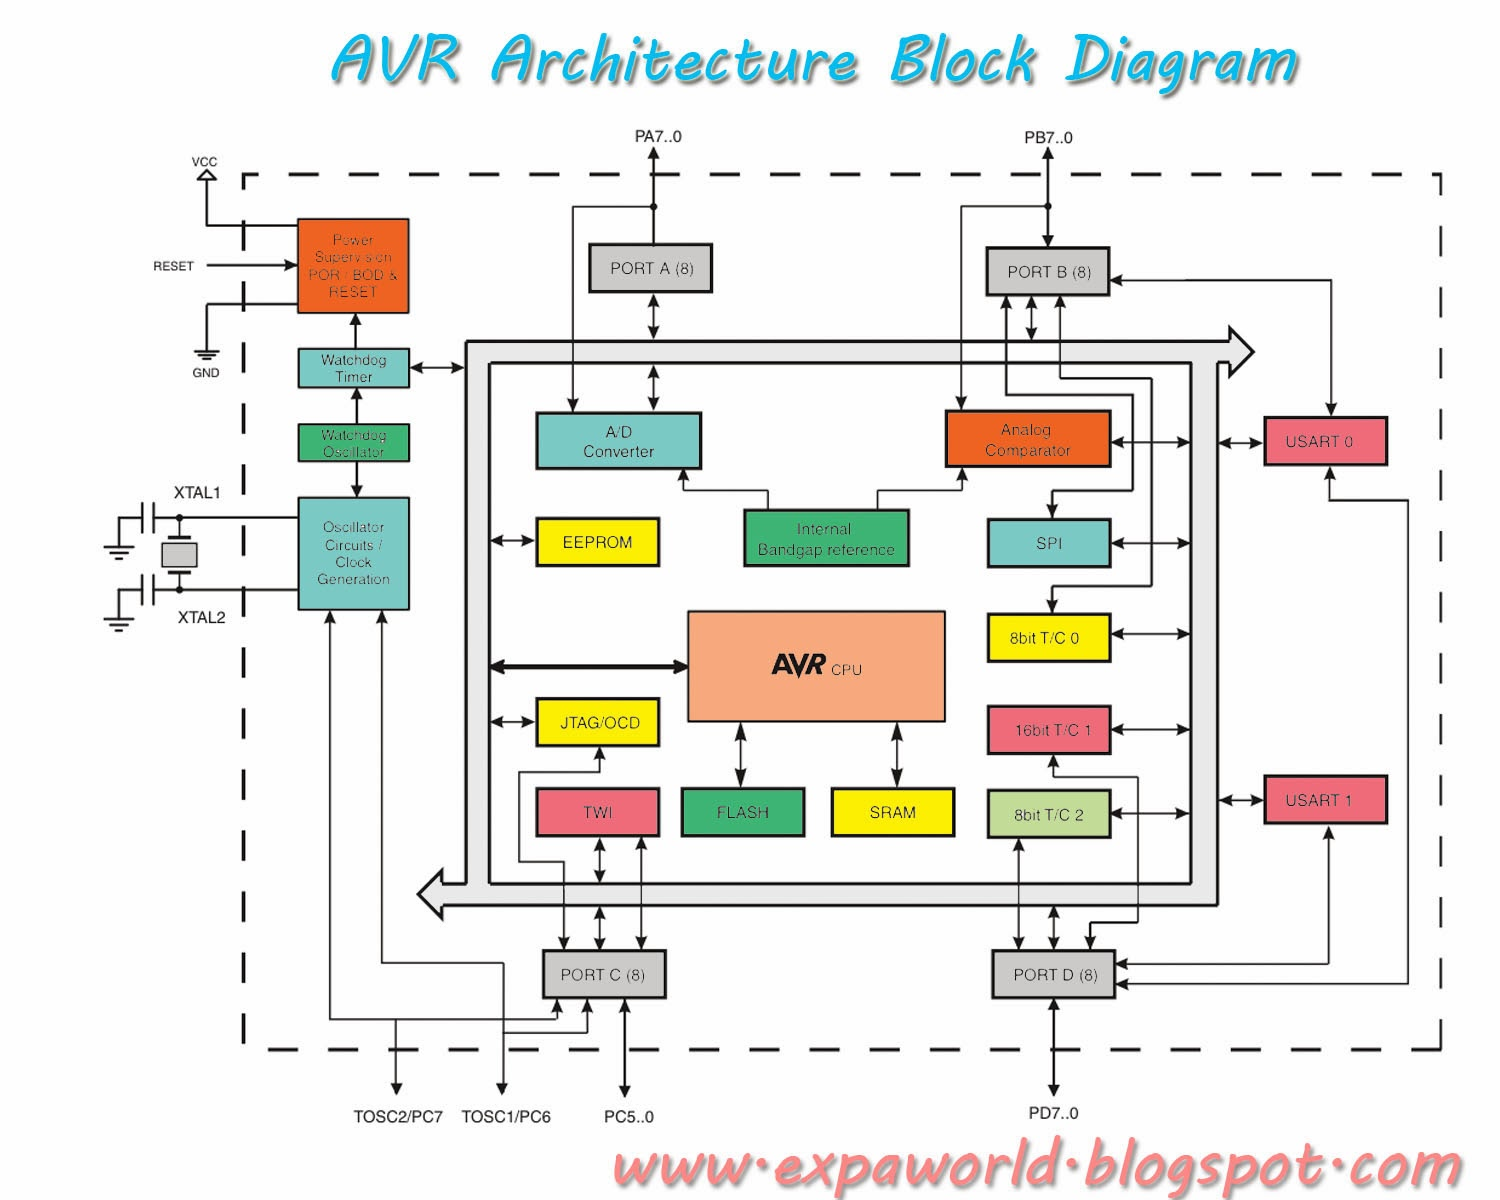 Architecture Software Block Diagram Briggs And Stratton Pressure Washer Parts World Of Embedded